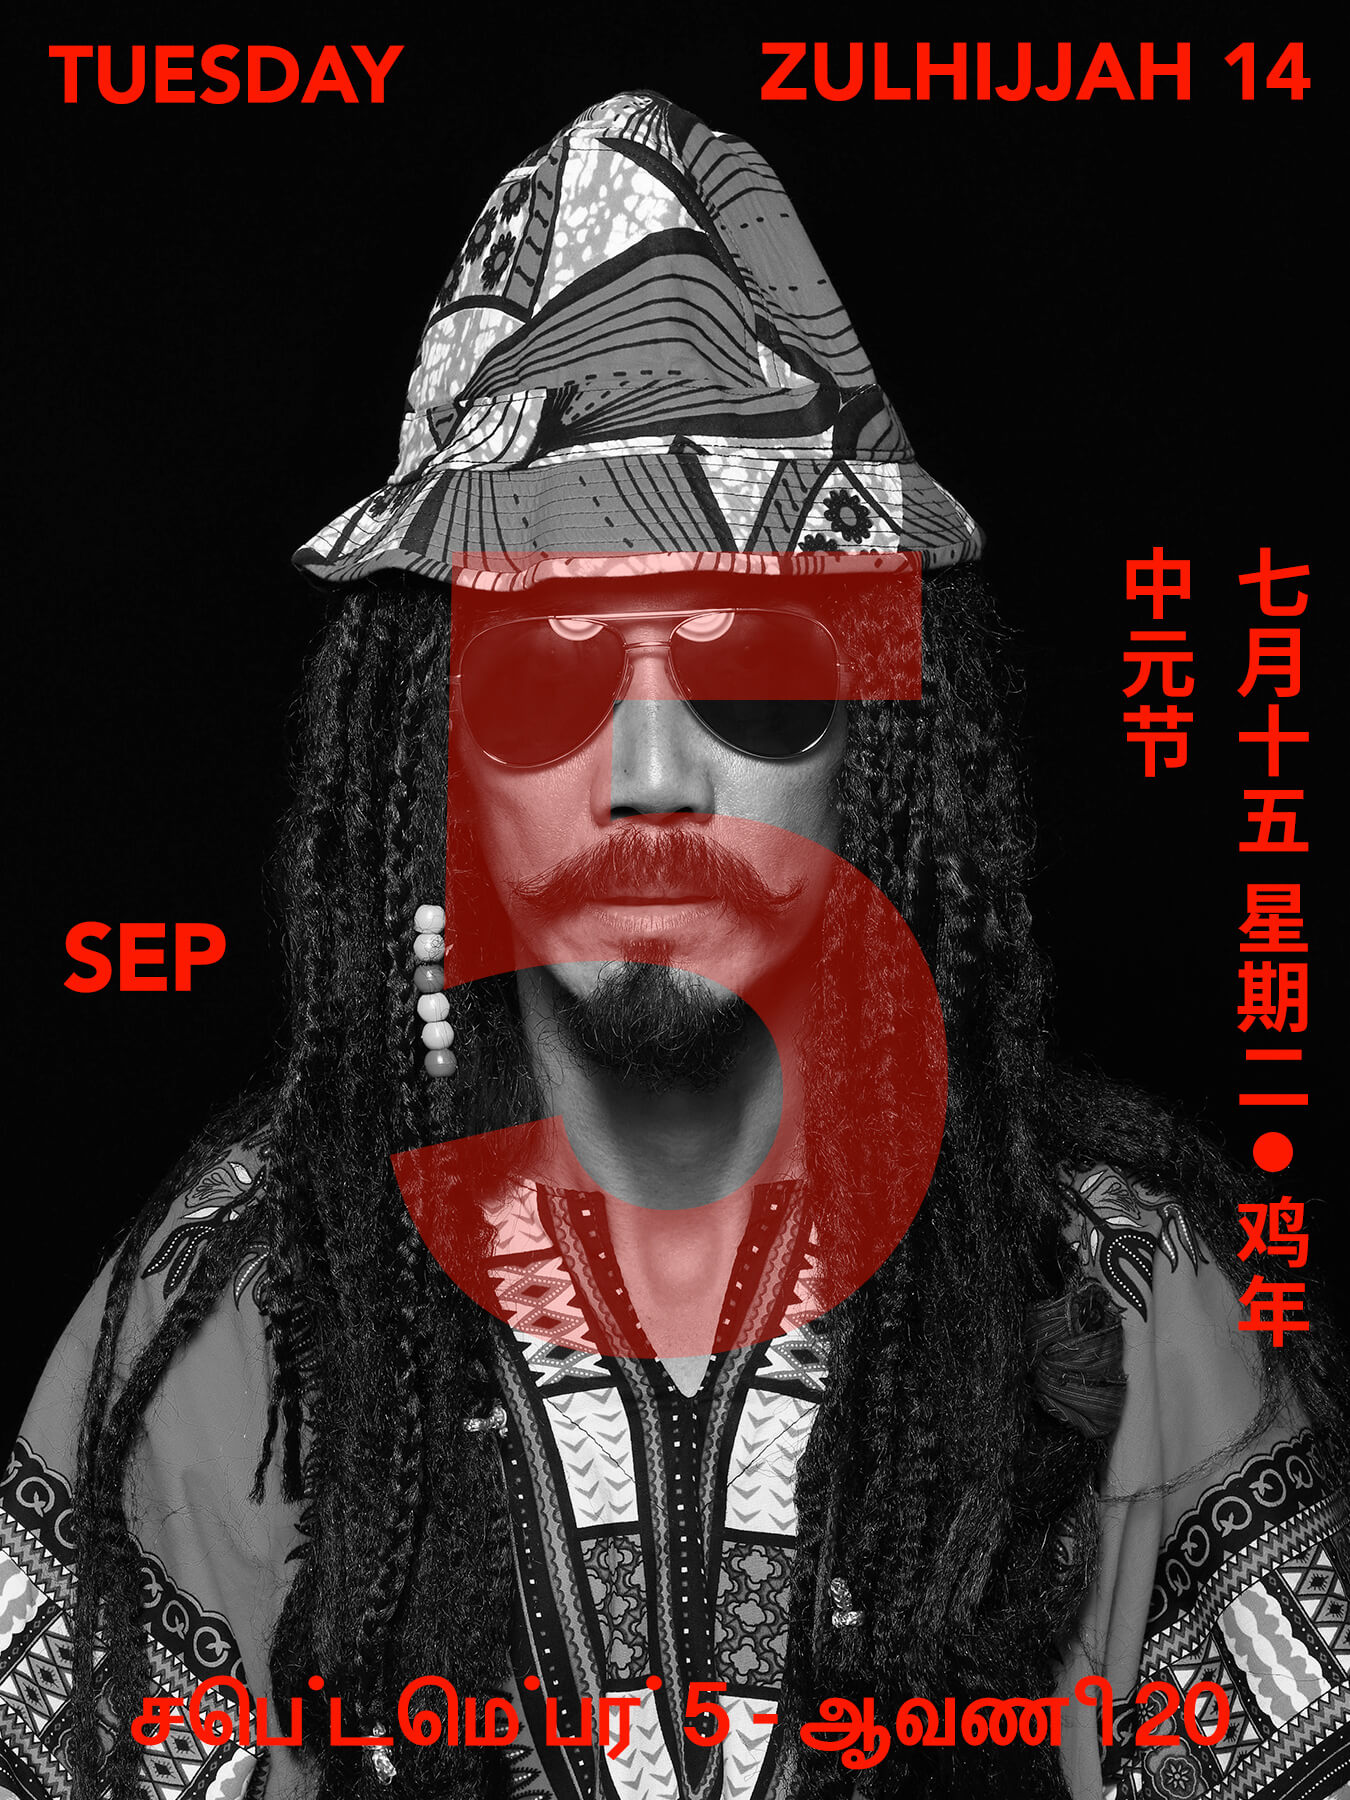 5 Sep 2017: Derong is styled as Bob Marley